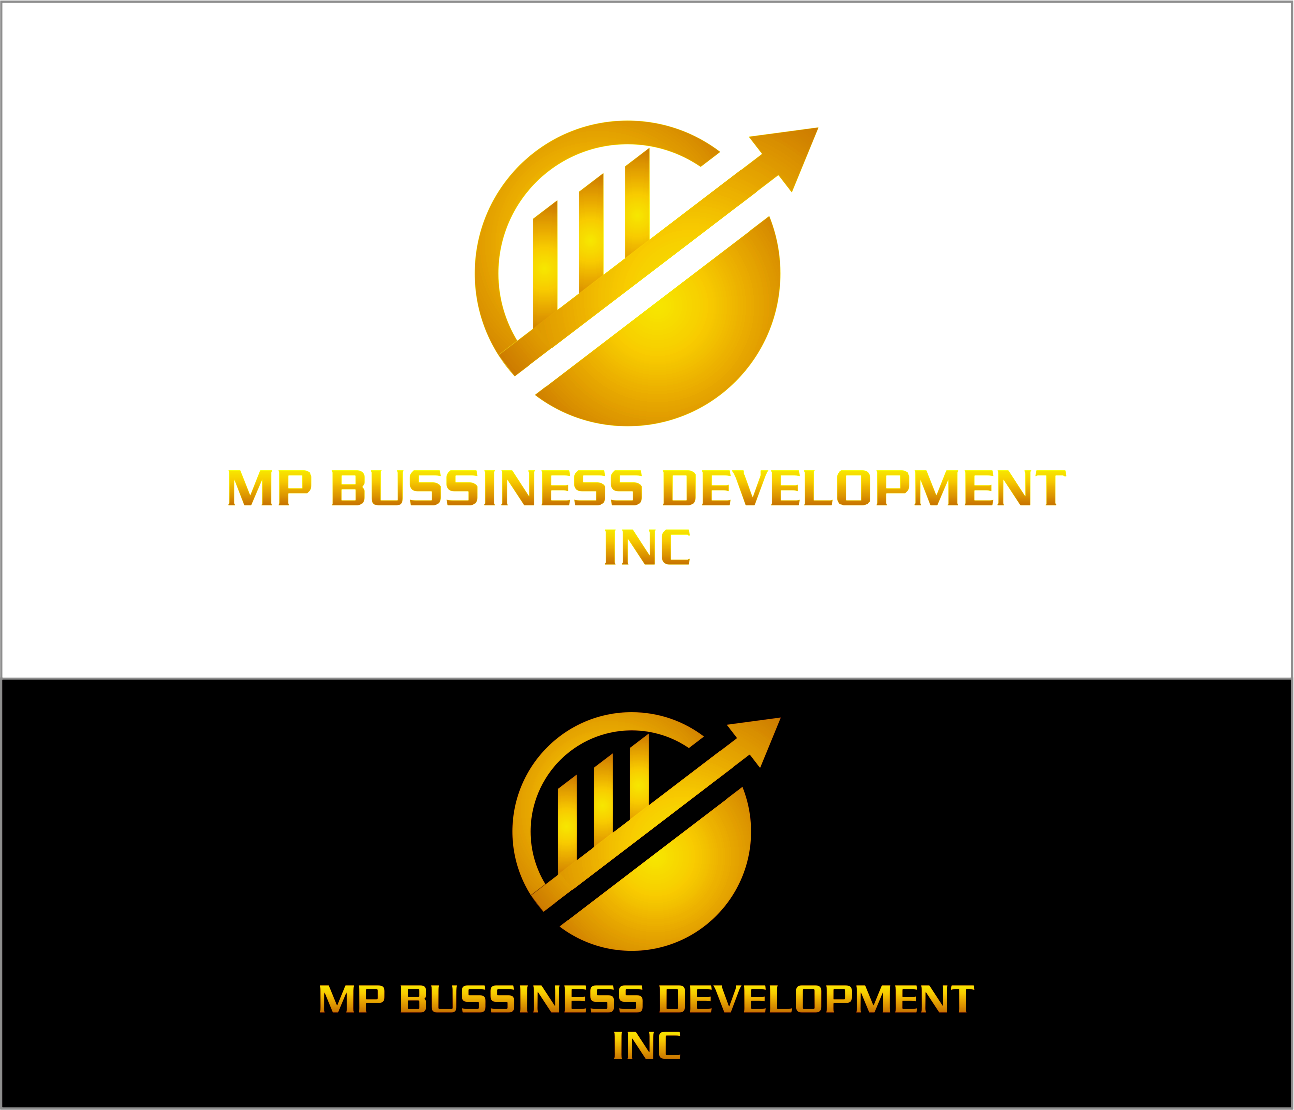 Logo Design by Armada Jamaluddin - Entry No. 239 in the Logo Design Contest MP Business Development Inc. Logo Design.